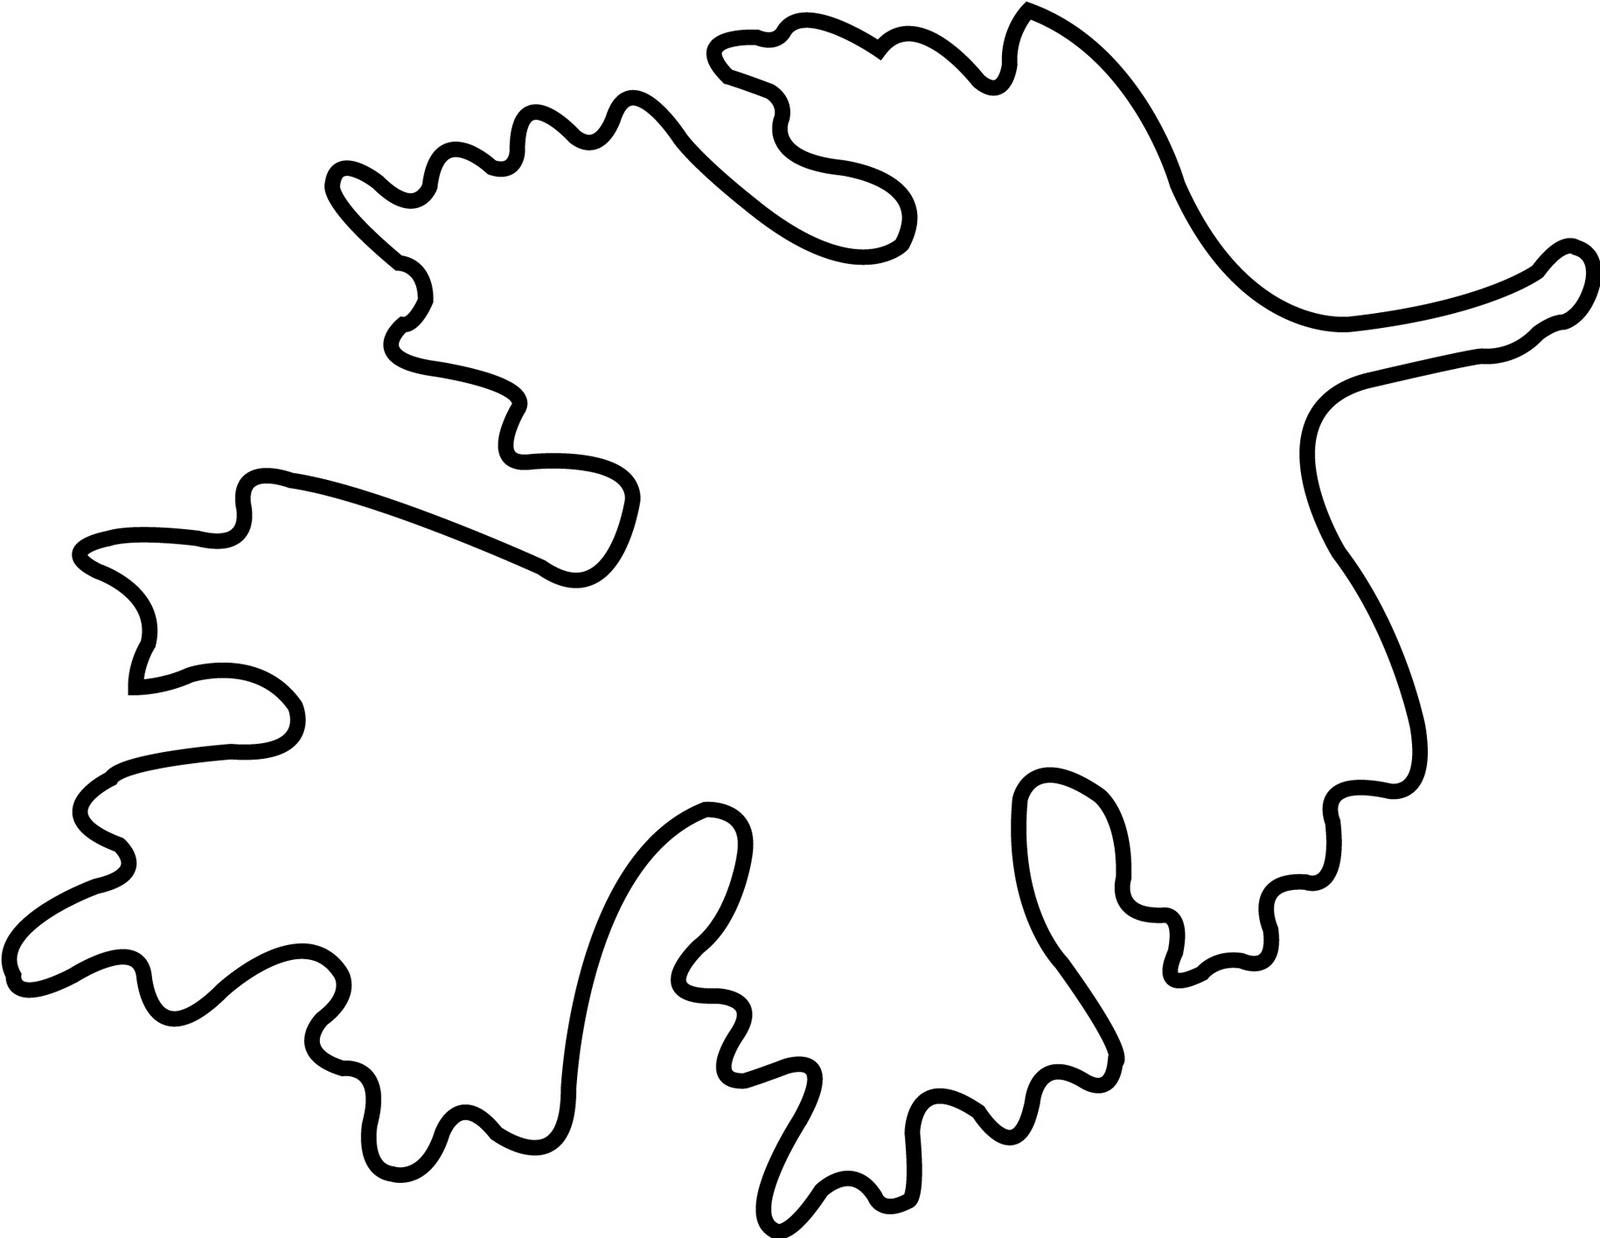 Oak Leaf Drawing Template at GetDrawings.com | Free for personal use ...